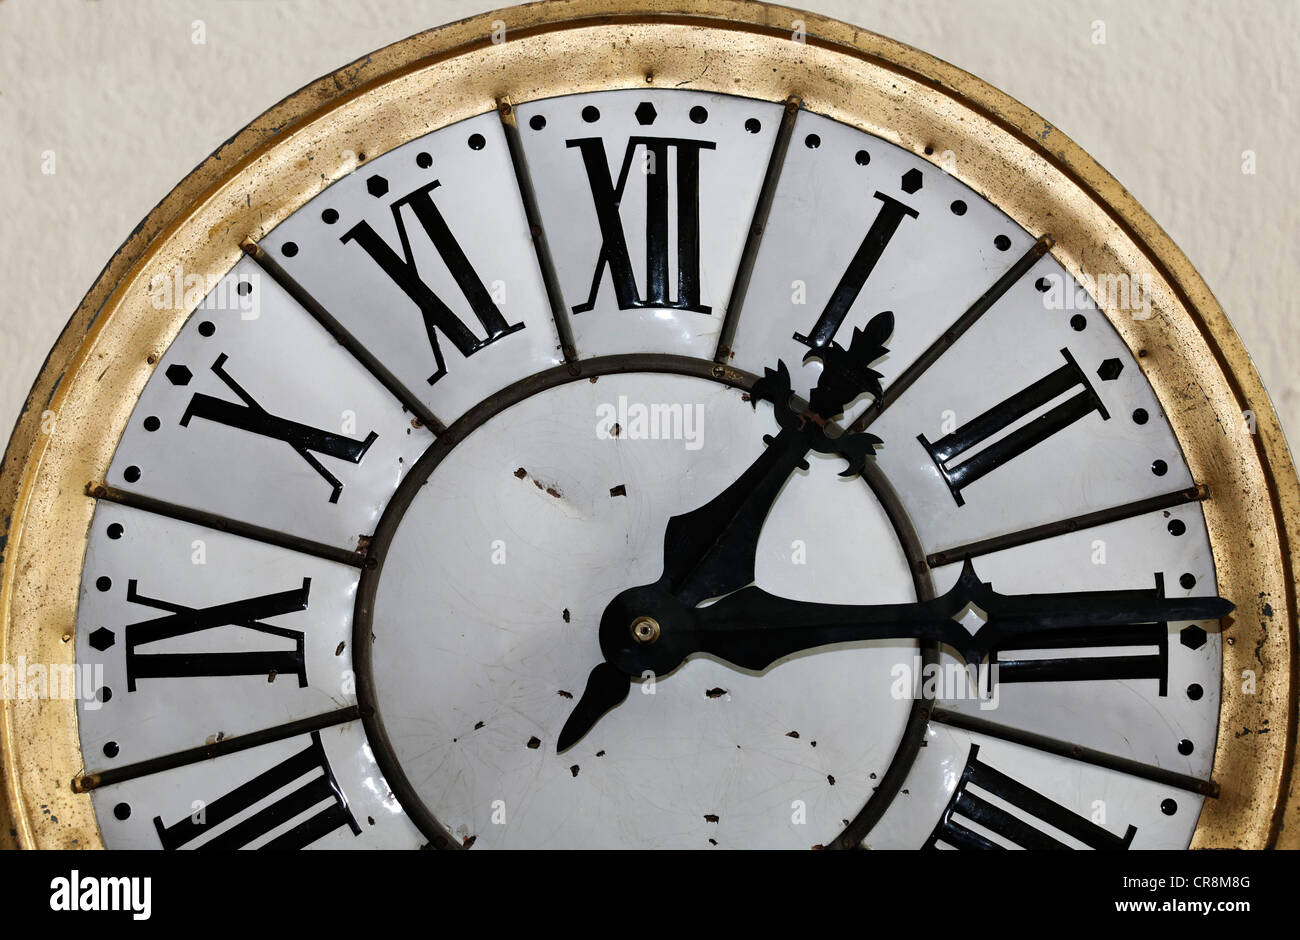 Dial with Roman numerals, historic clock, Museum Kasteel Hoensbroek, Limburg, The Netherlands, Europe - Stock Image